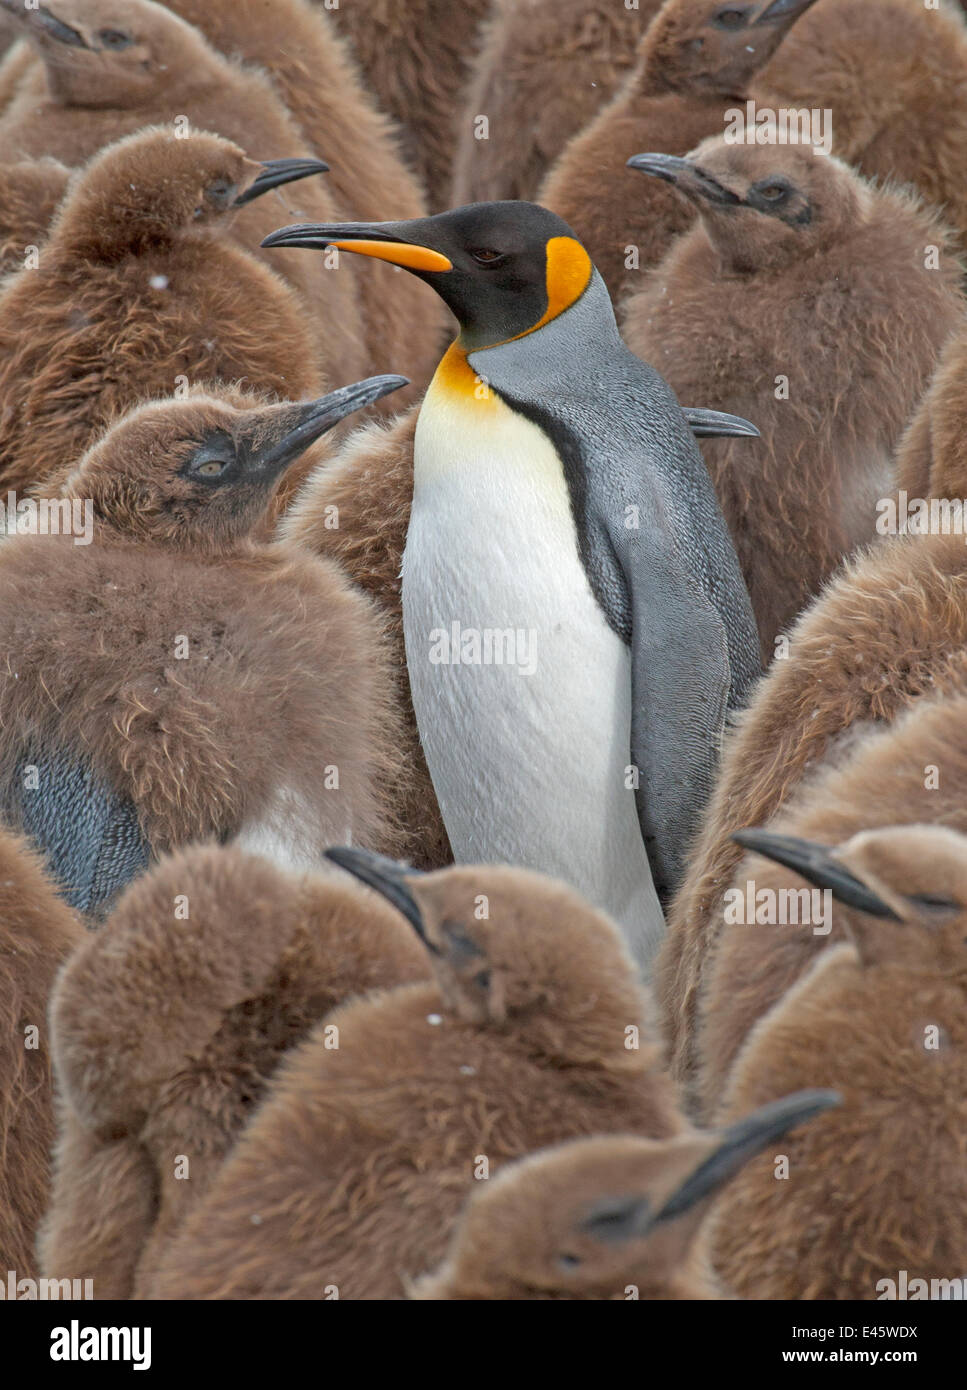 King Penguin (Aptenodytes patagonicus) adult standing amongst colony of chicks, Gold Harbor, South Georgia, South - Stock Image